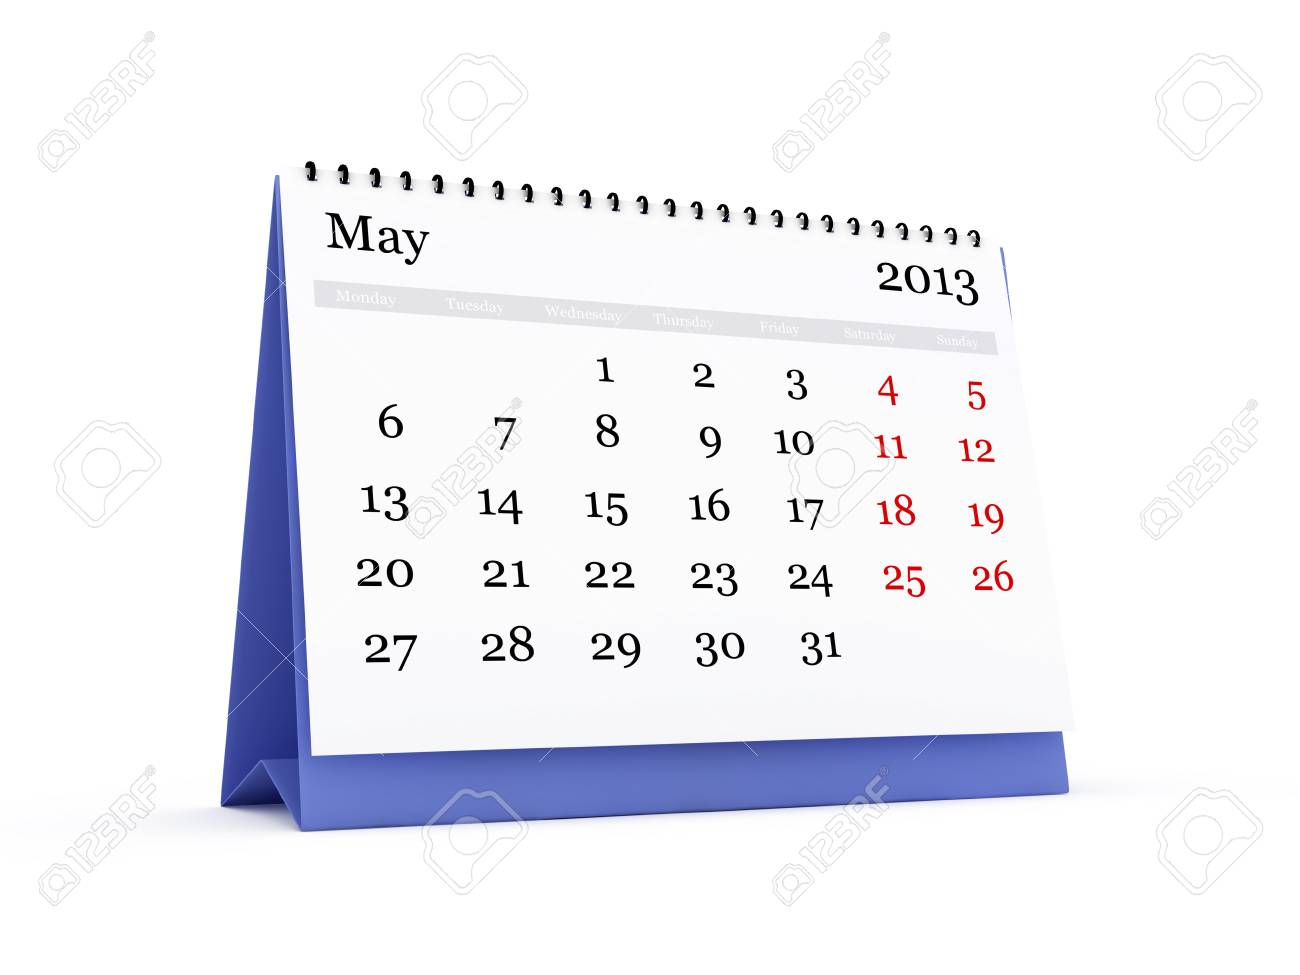 desk calendar may month 2013 year isolated on white background